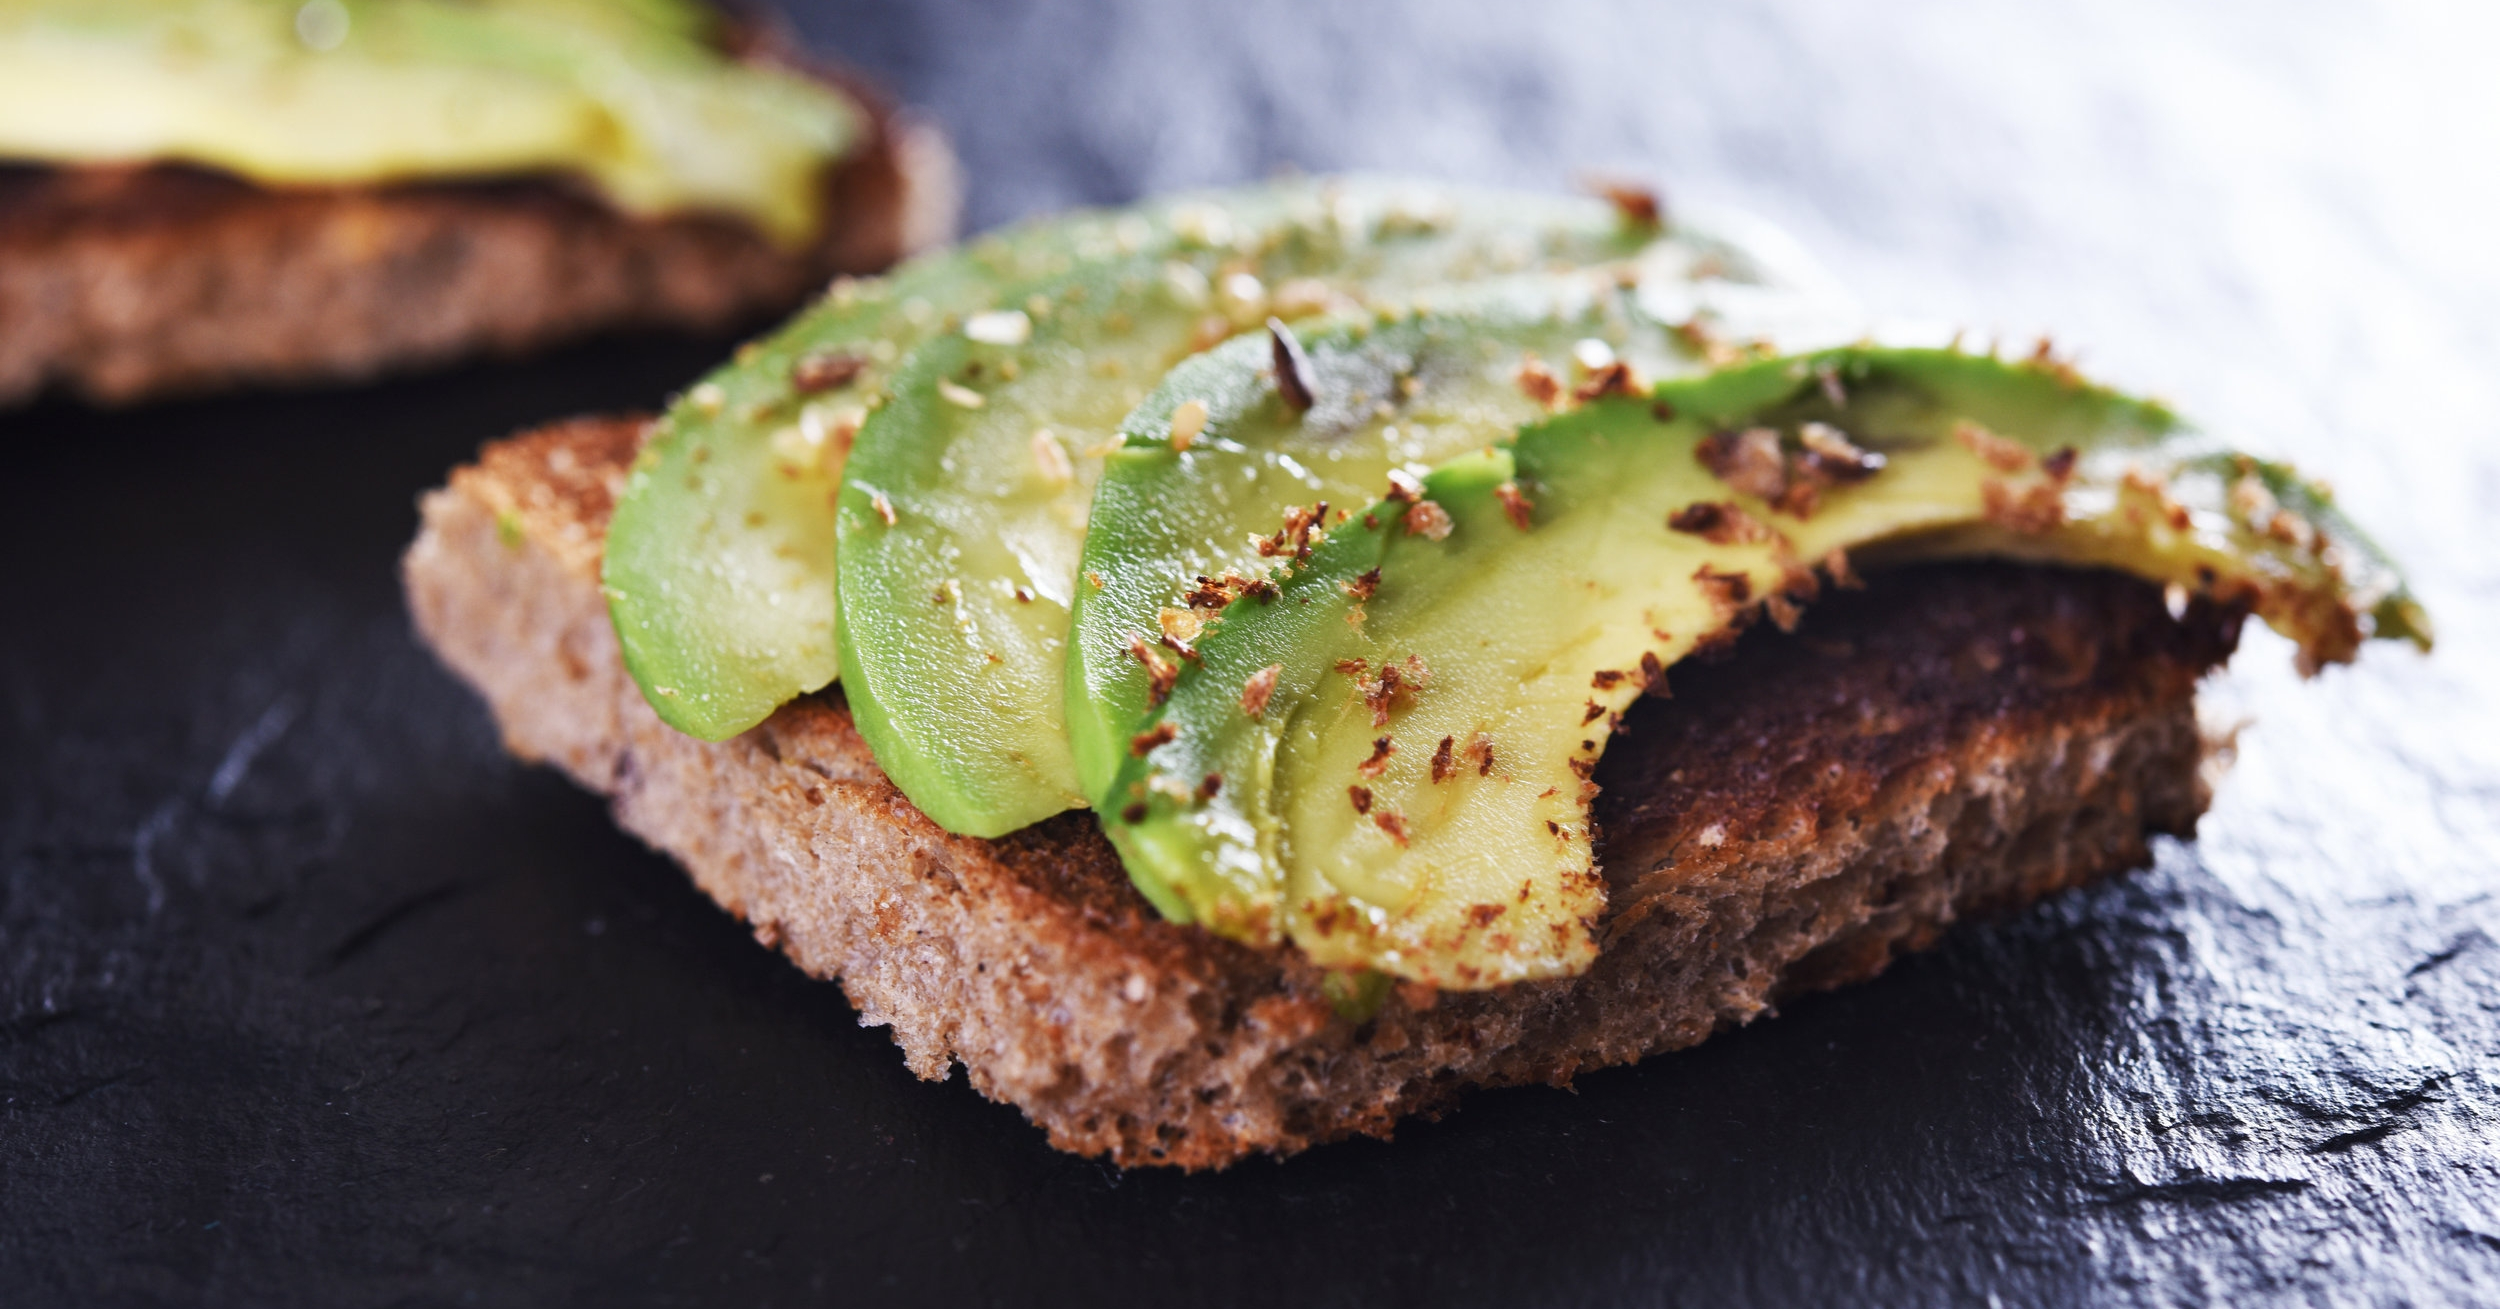 Plant-based breakfast avocado toast, healthy fats and vegan brunch ideas.